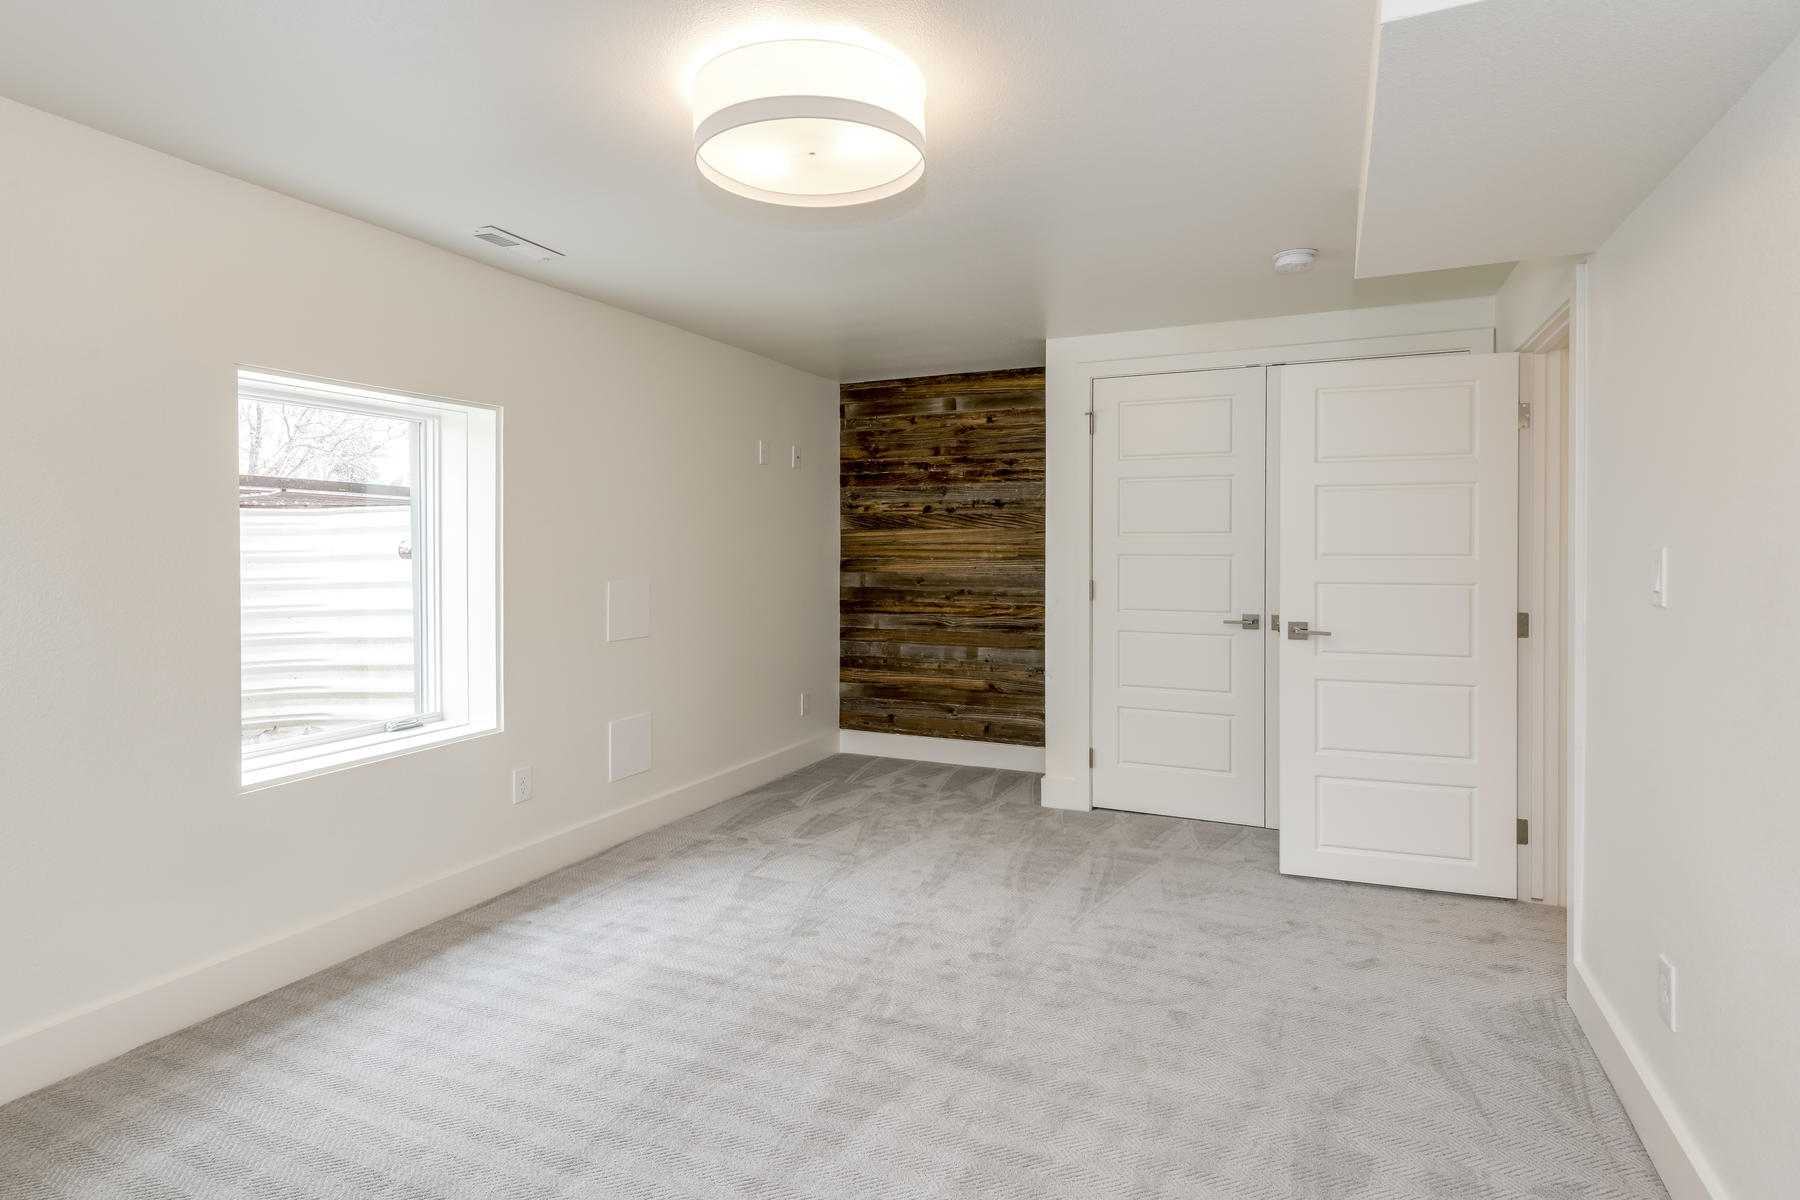 Additional photo for property listing at 3525  East 7th Avenue Parkway 3525  East 7th Avenue Parkway Denver, Colorado 80206 United States